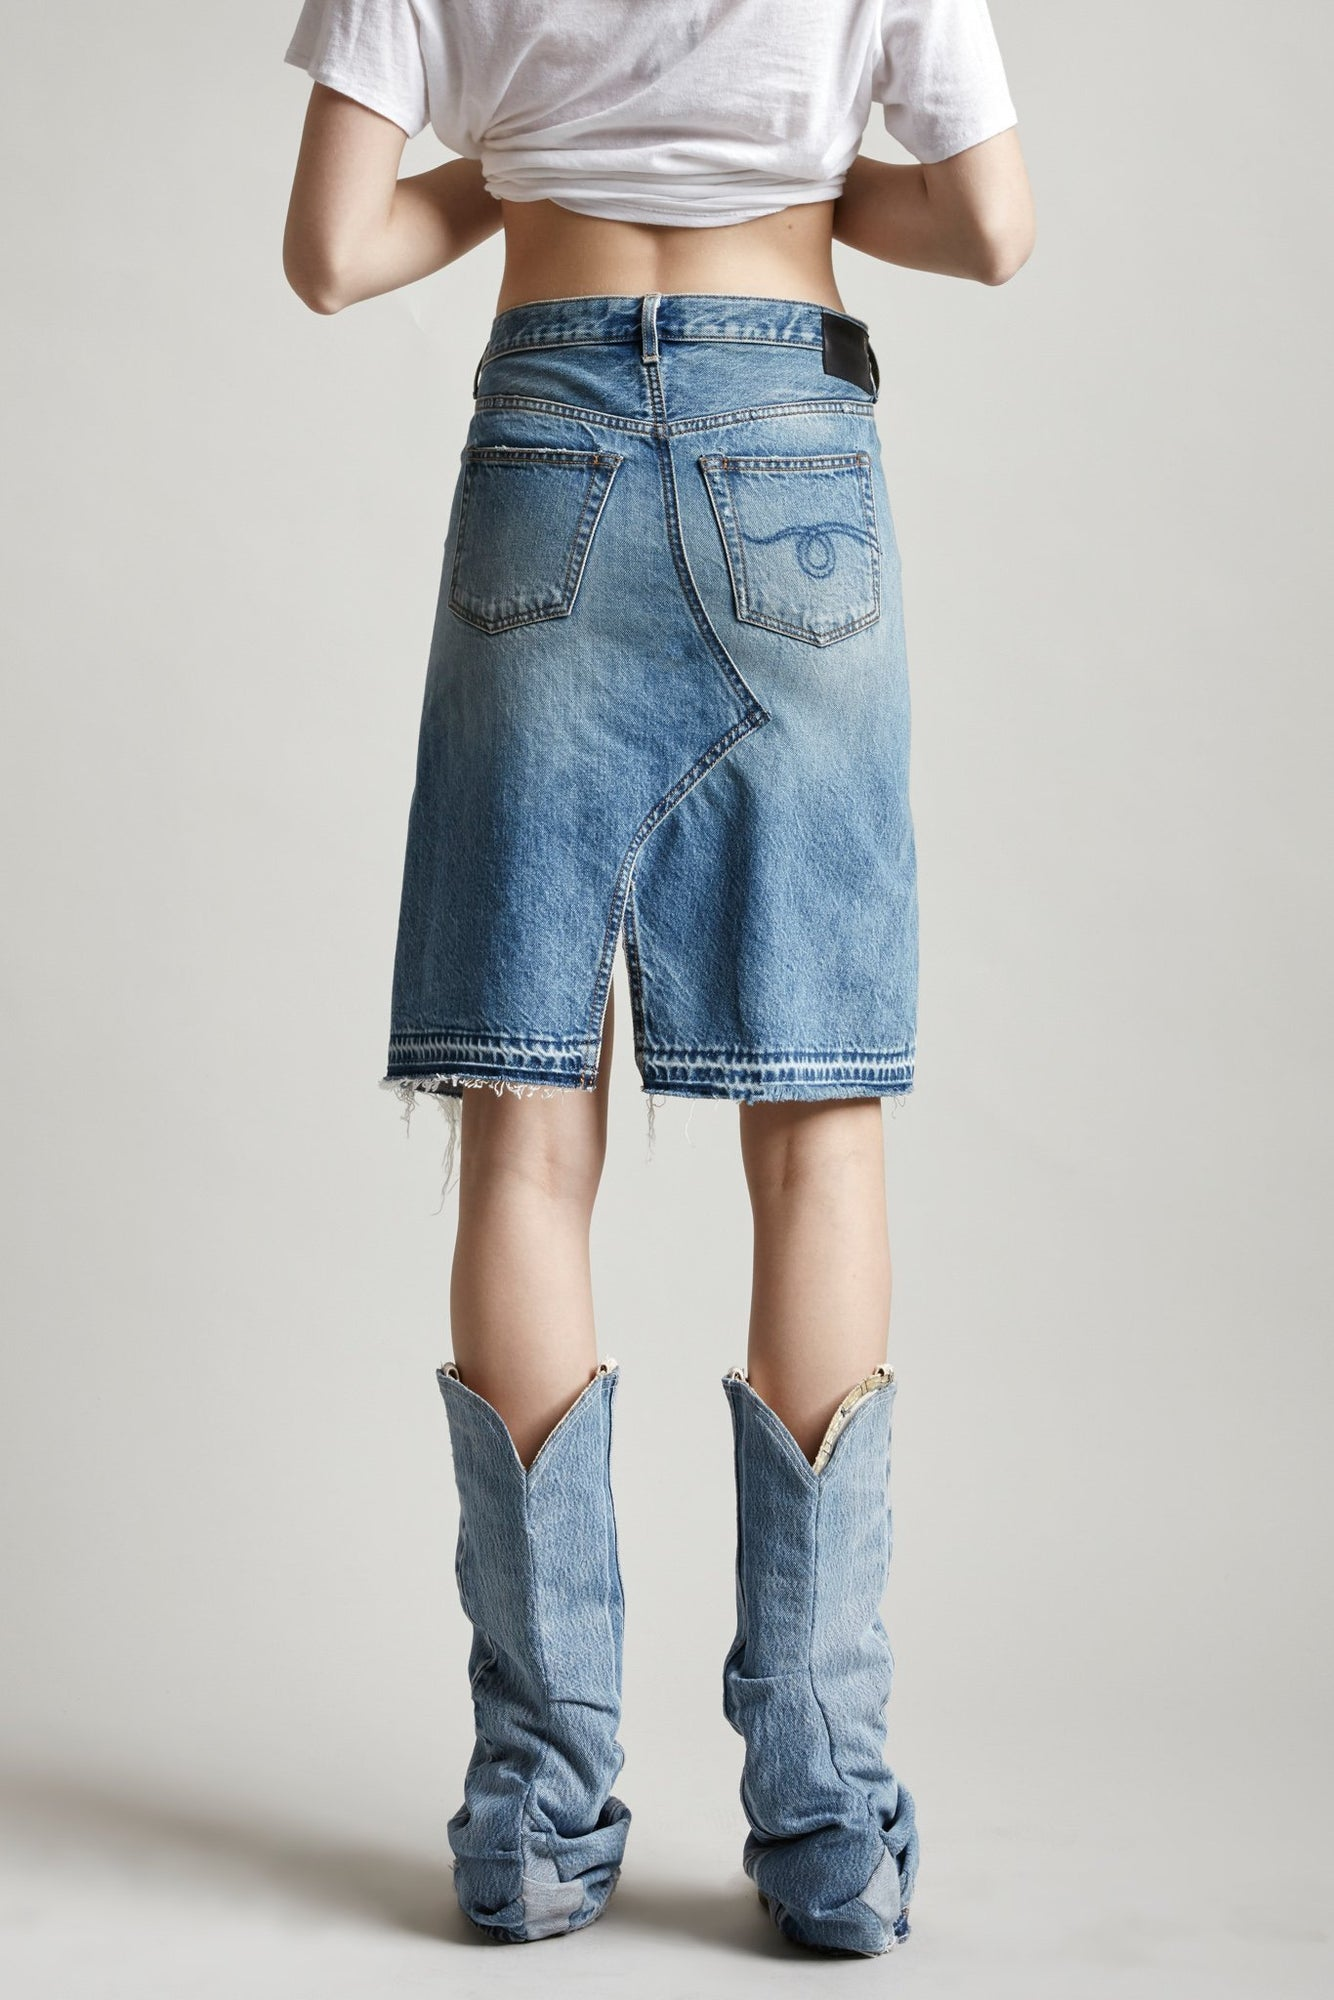 R13 denim short denim skirt with shredded split up the middle in light blue wash jasper